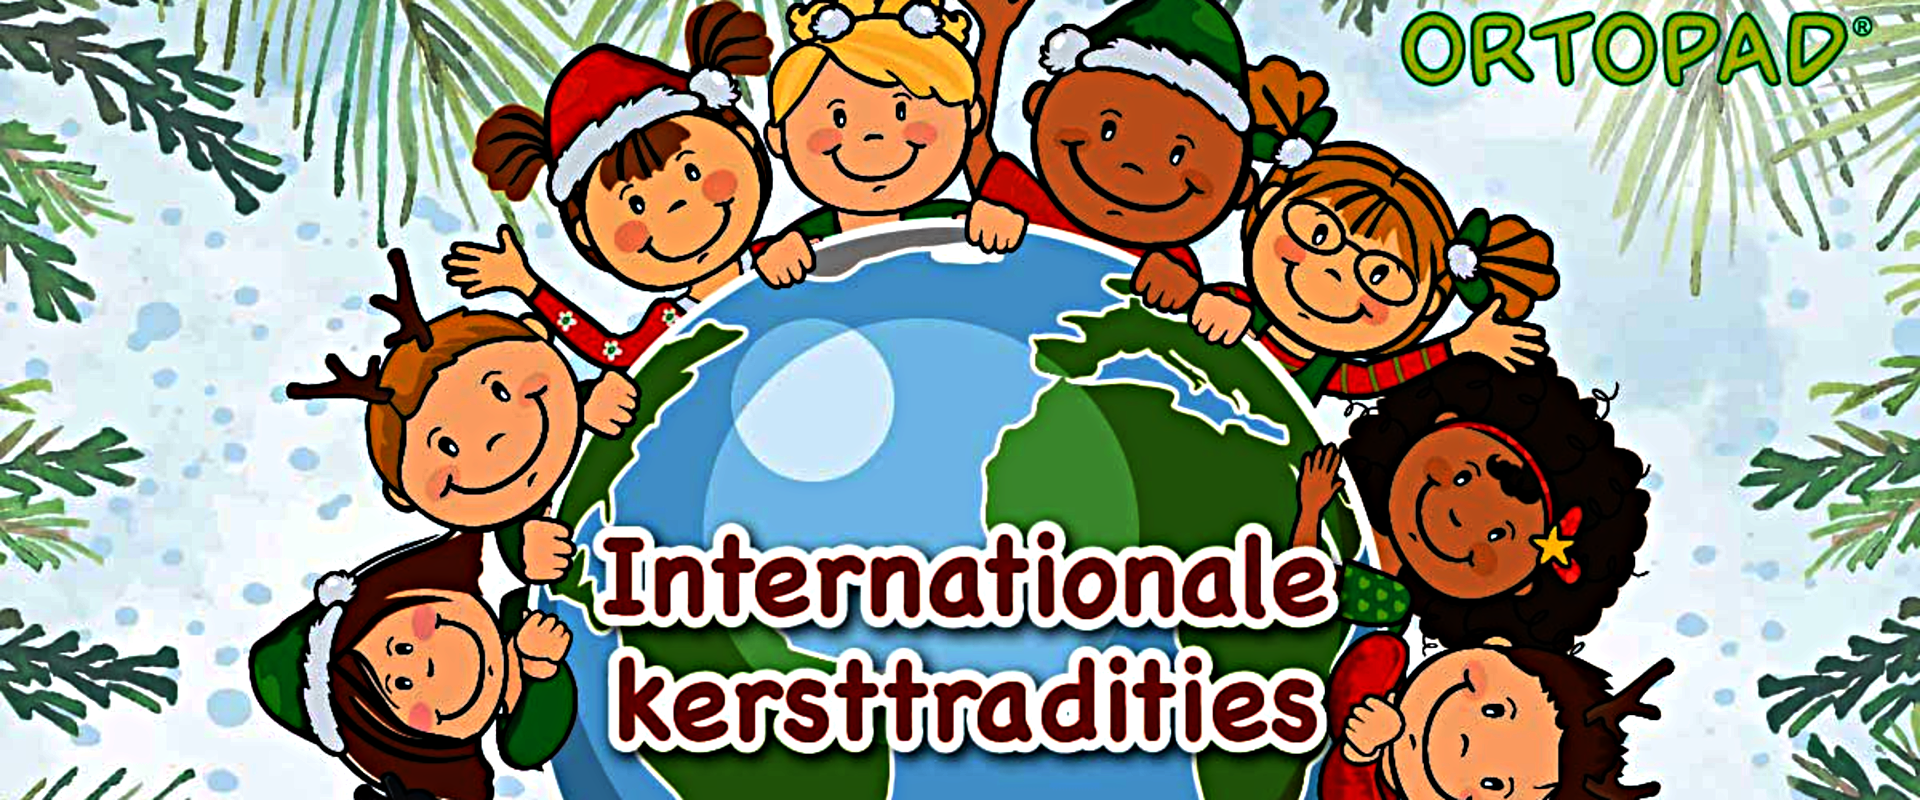 Internationale kersttradities